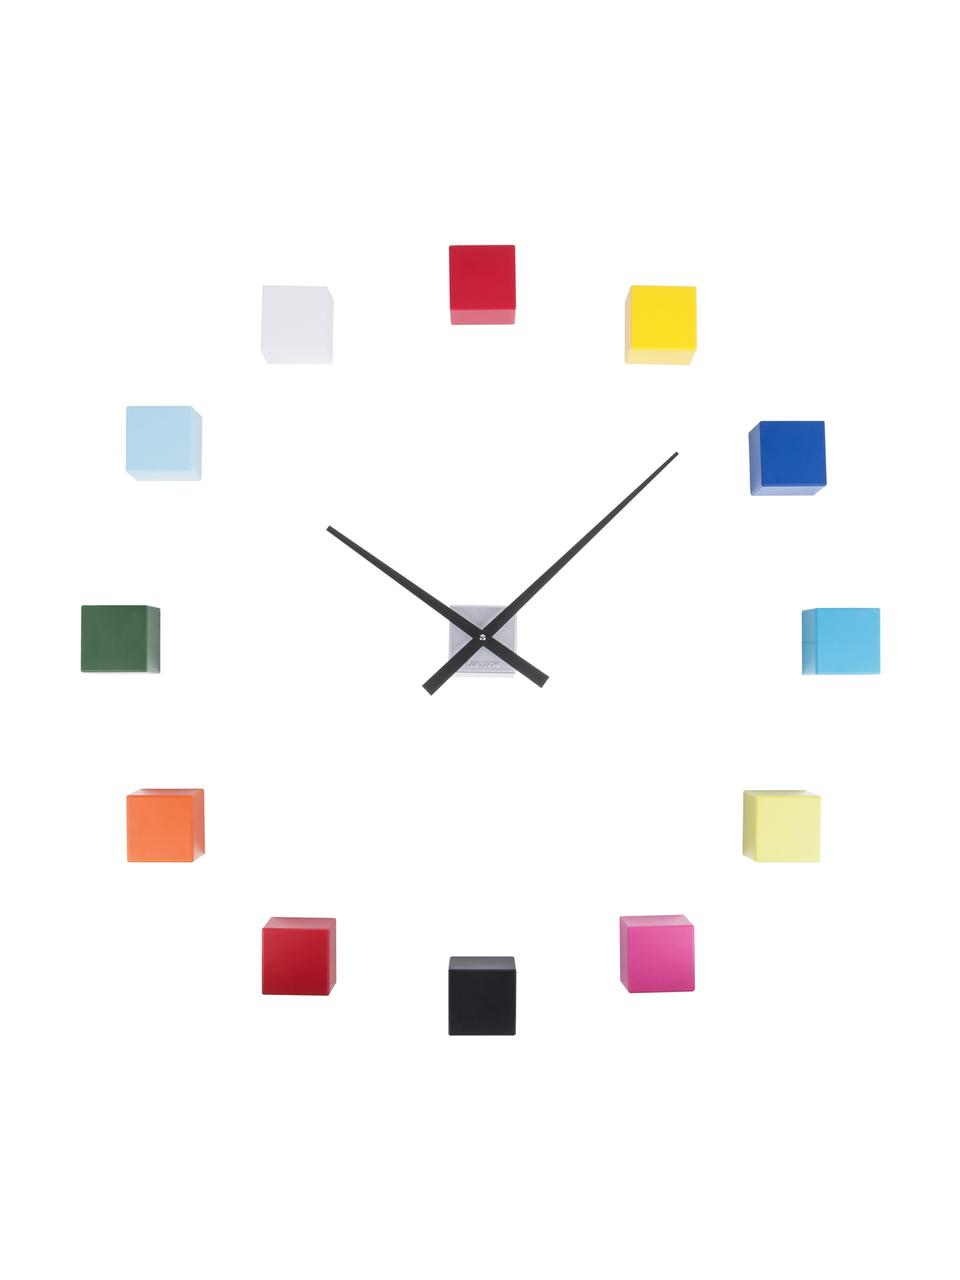 Reloj de pared DIY Cubic, kit de montaje, Plástico, Multicolor, An 6 x Al 6 cm